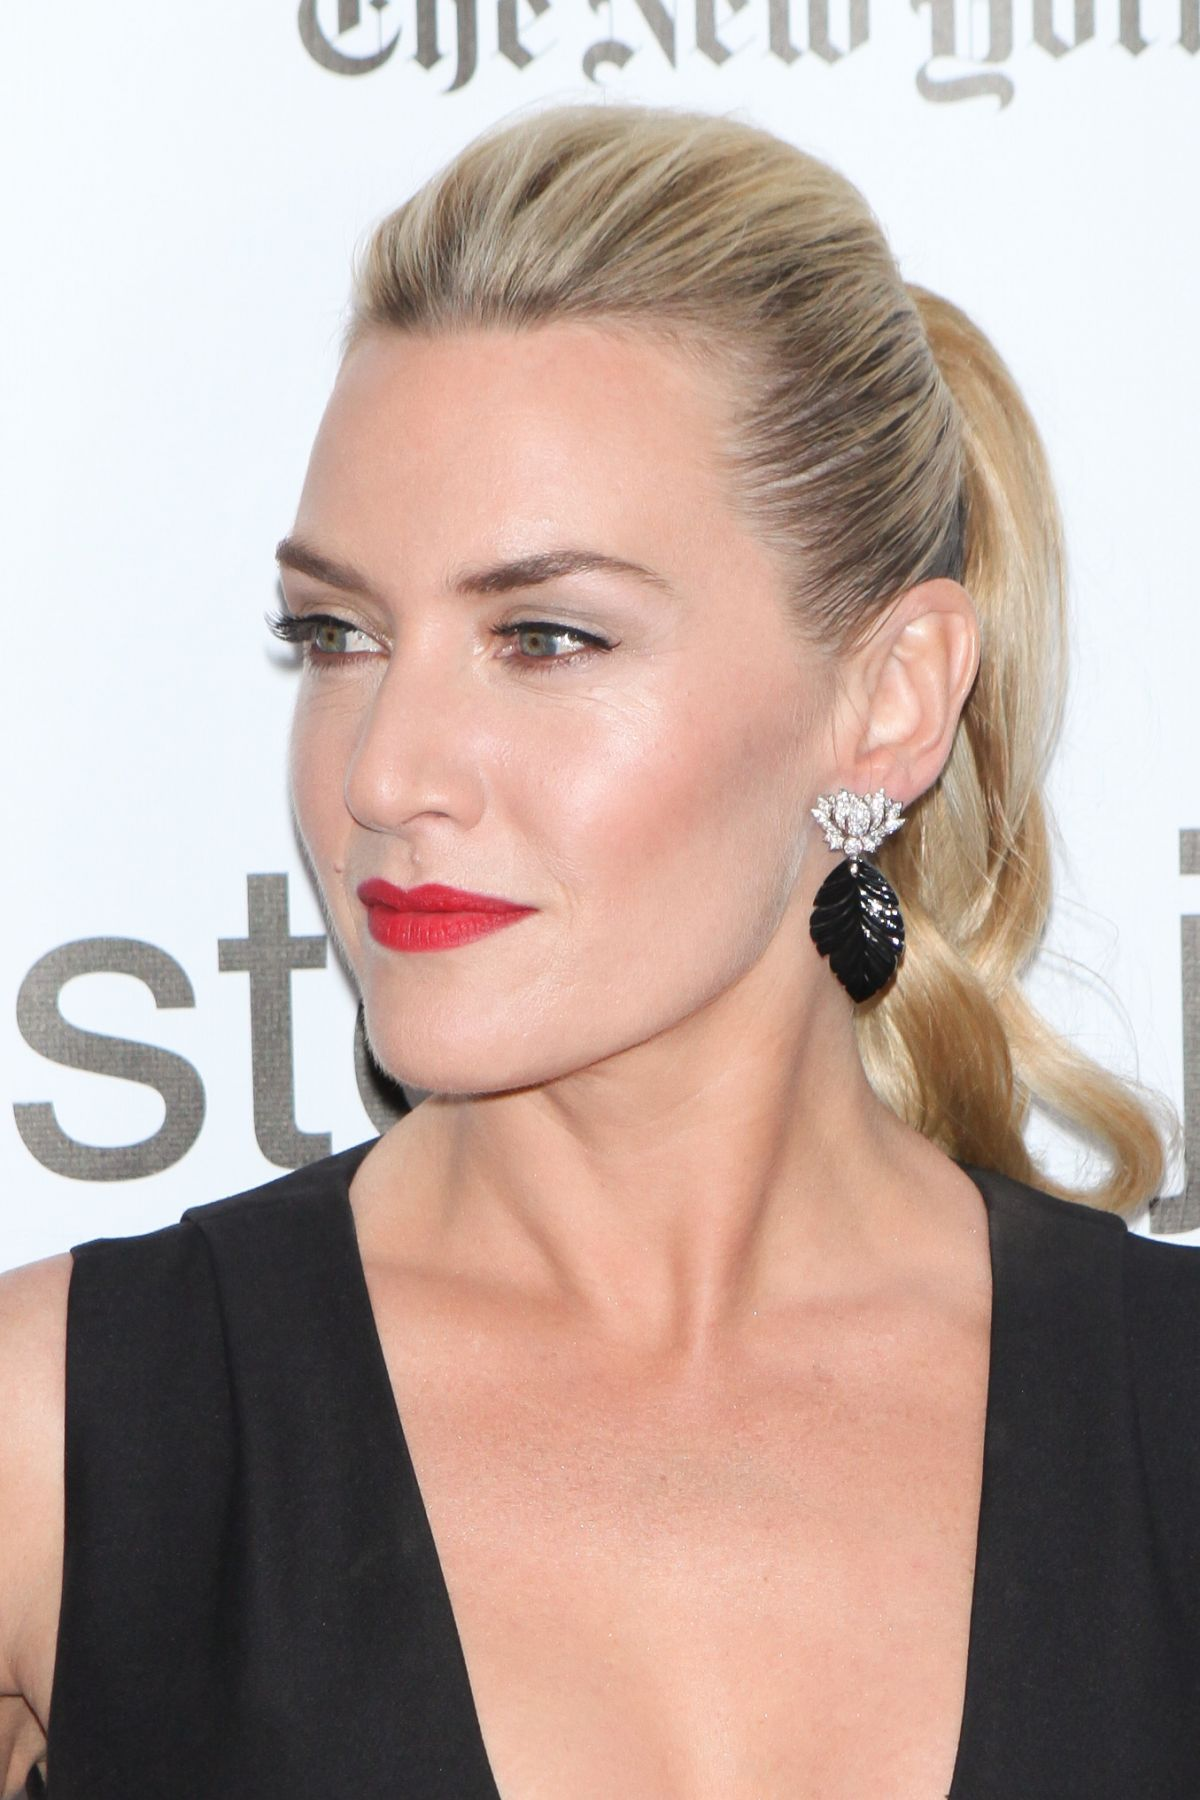 kate-winslet-attends-the-steve-jobs-premiere-during-the-53rd-new-york-film-festival-in-new-york-city_1